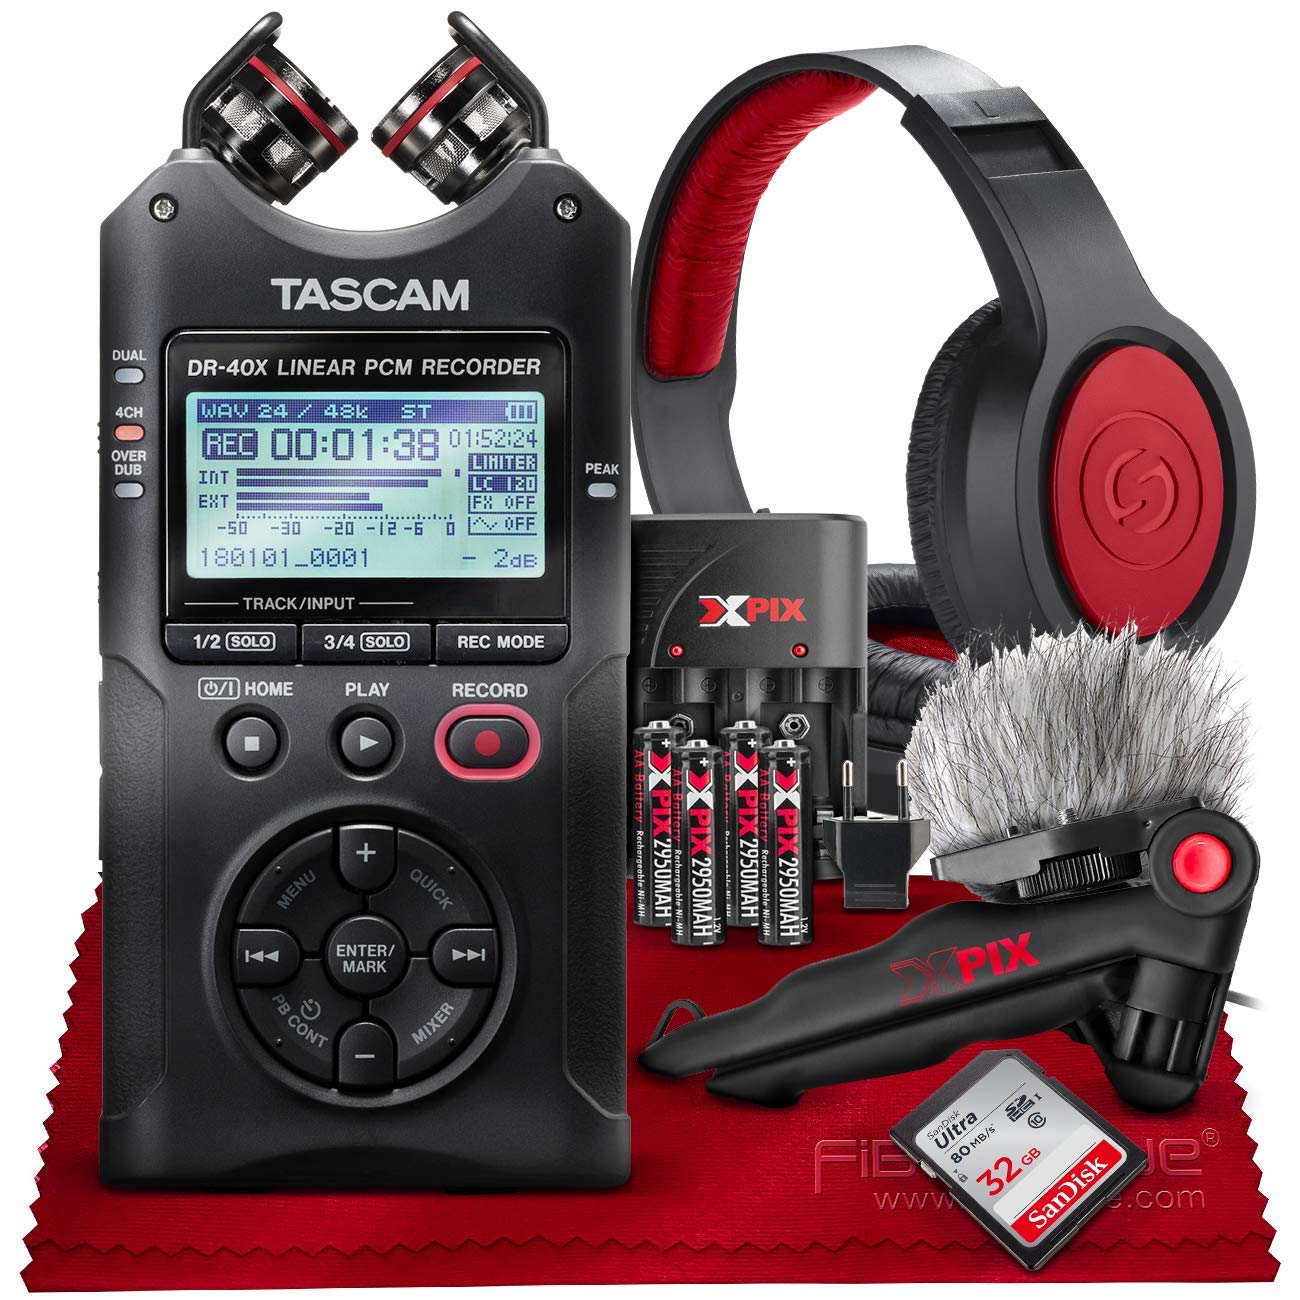 Tascam DR-40X Four-Track Digital Audio Recorder and USB Audio Interface + 32GB + Samson Headphones + Table Tripod + Accessory Bundle